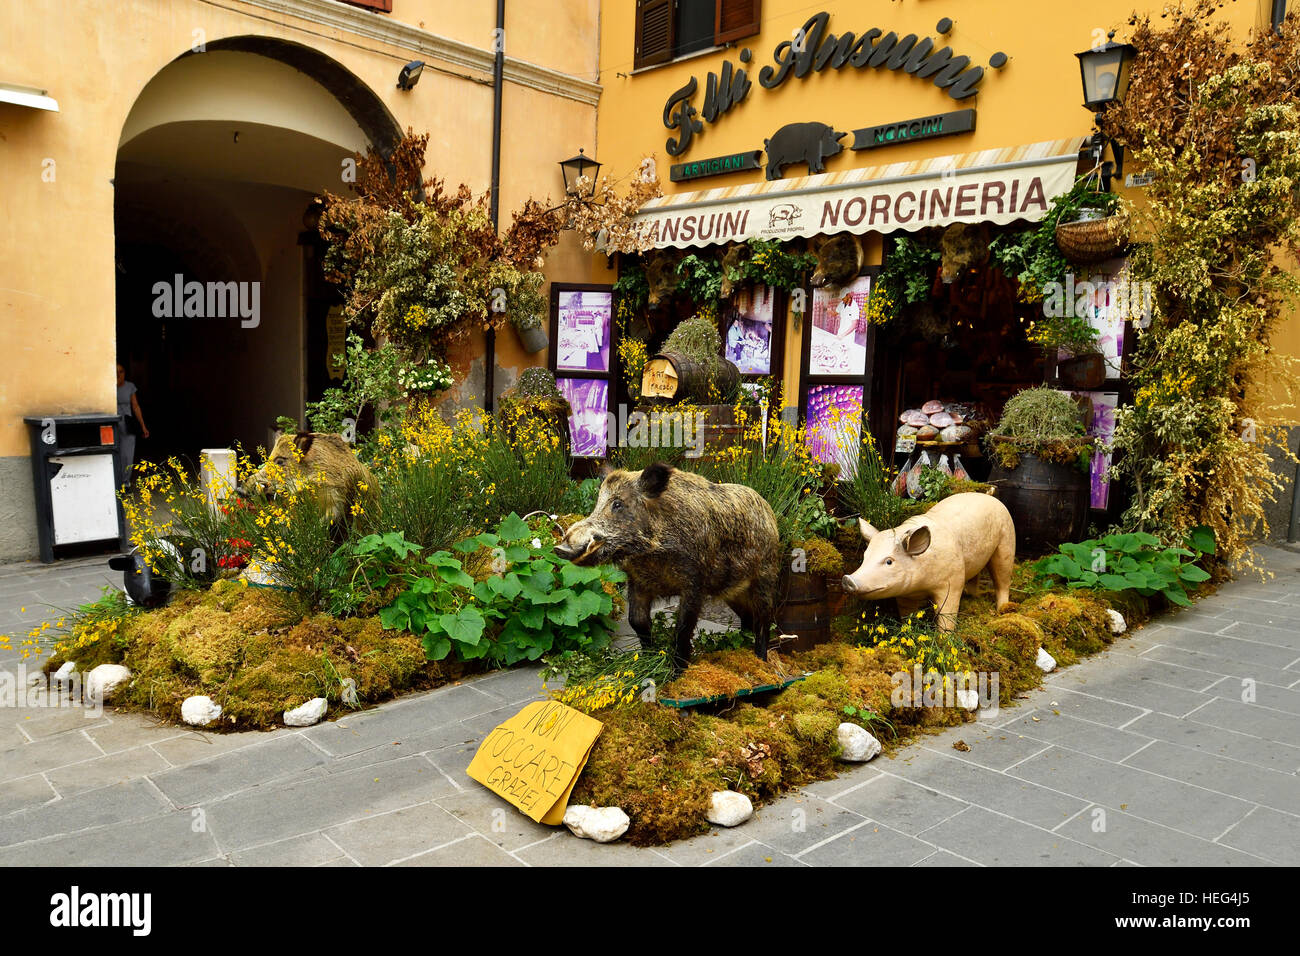 Decorated specialties, butcher with wild boar products, Norcia, Perugia, Umbria, Italy - Stock Image